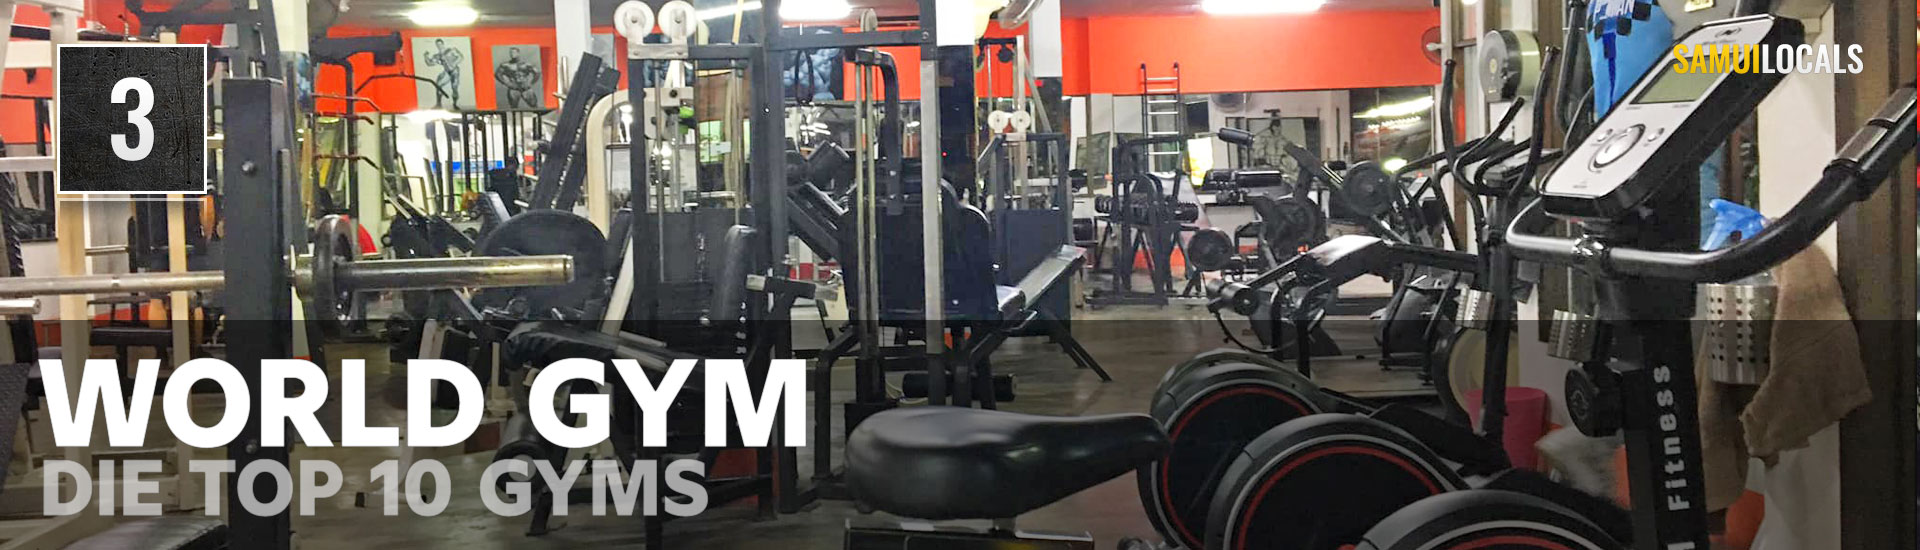 Top_10_gyms_world_gym